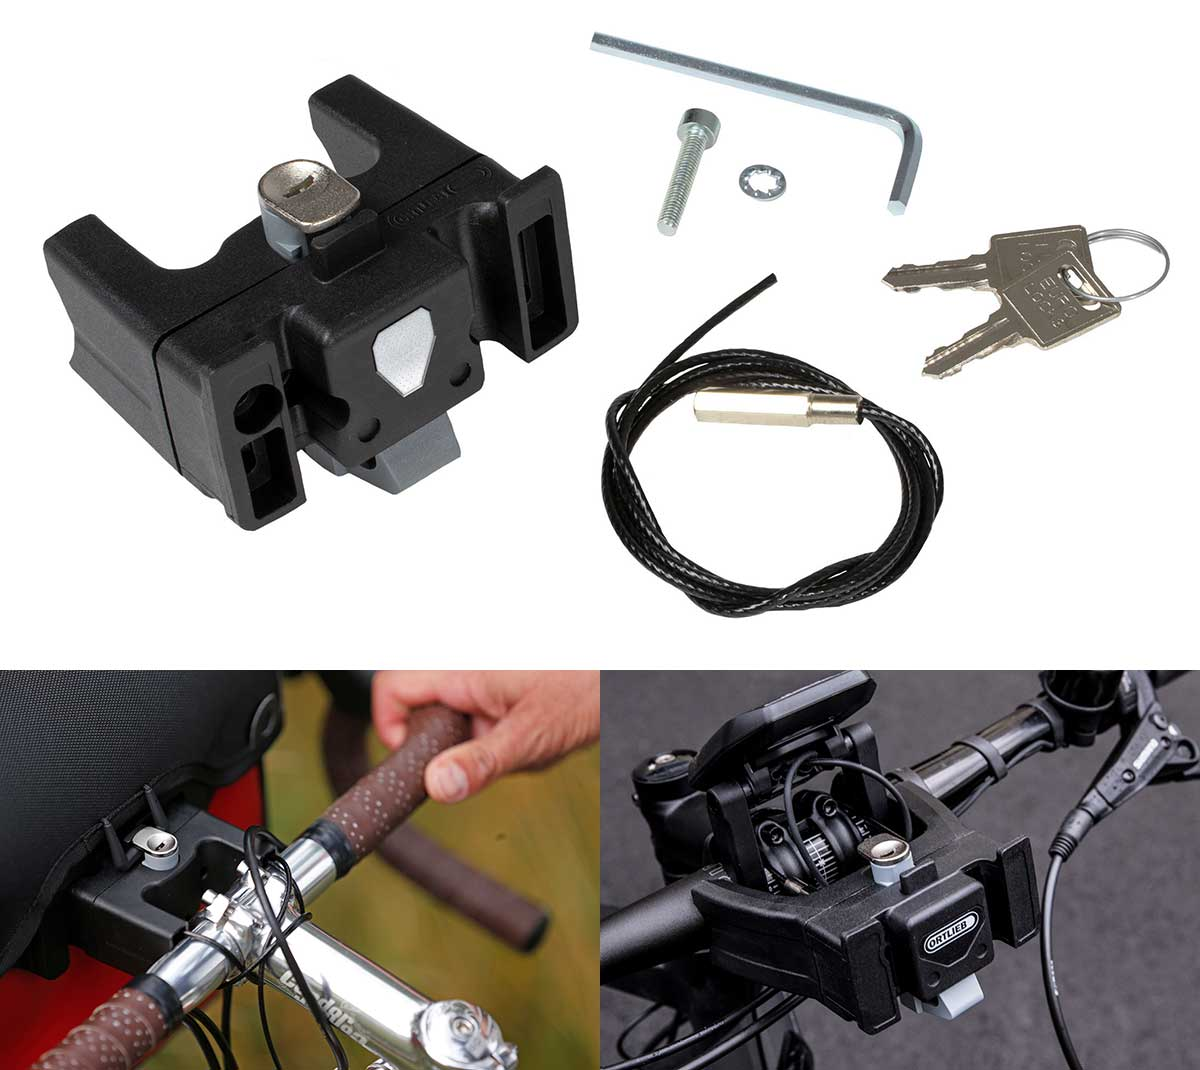 locking handlebar mount attachment for ortlieb bags